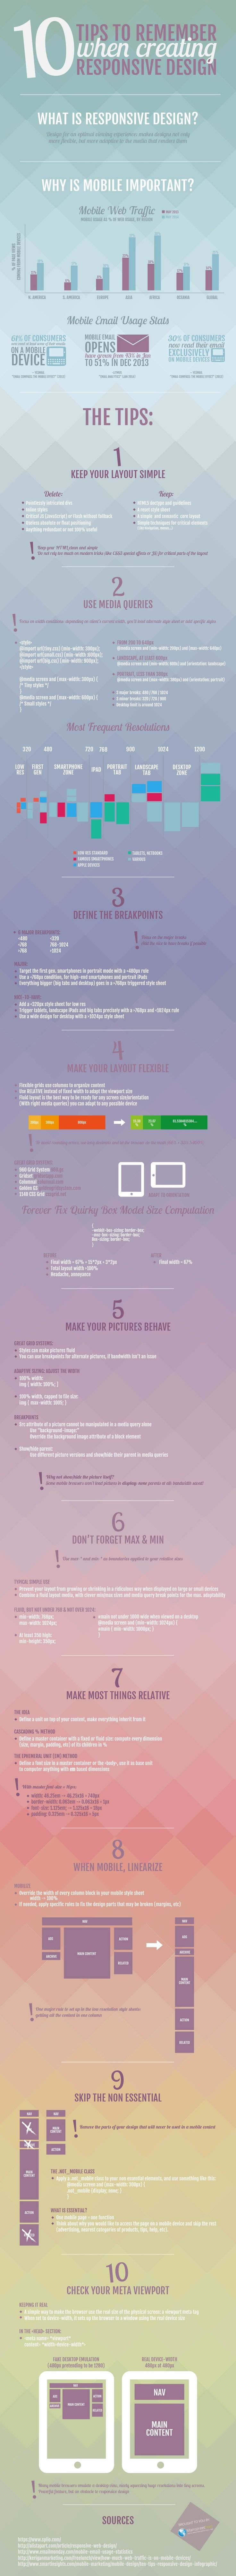 10 tips to remember when creating responsive design #INFOGRAPHIC #DESIGN